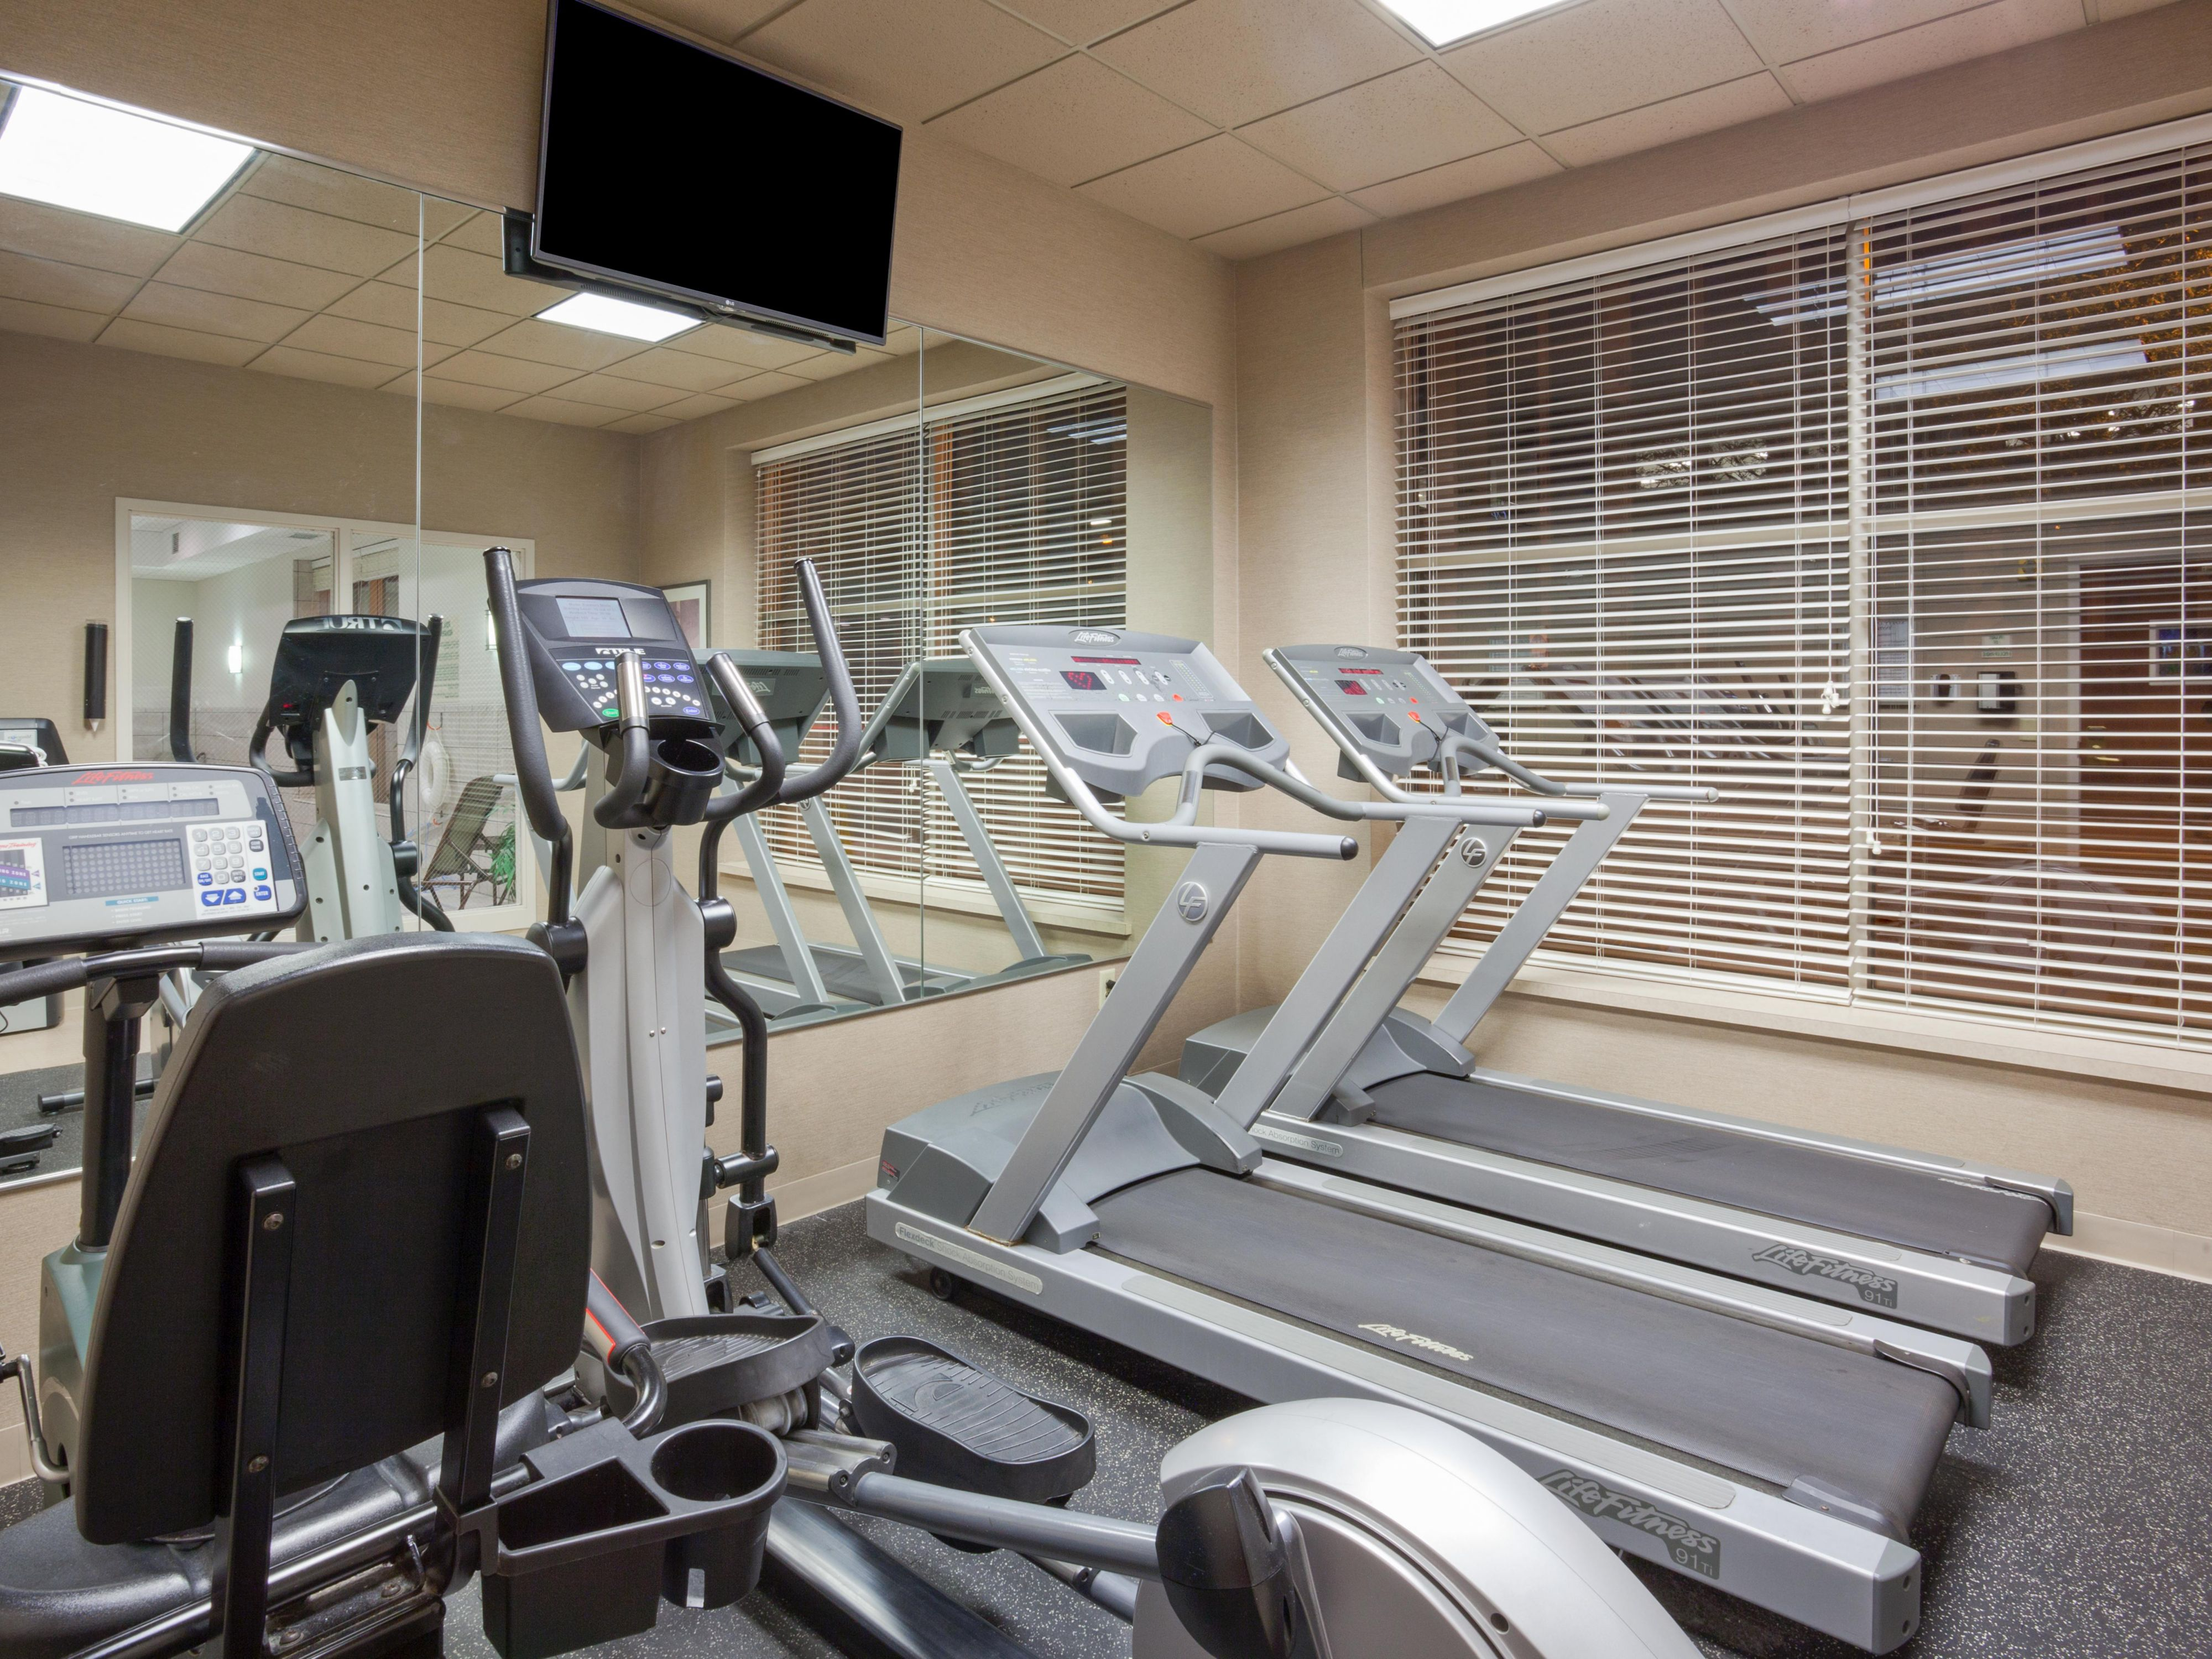 Holiday Inn Express Dwtn Mpls Conv Ctr - Cardio Fitness Center